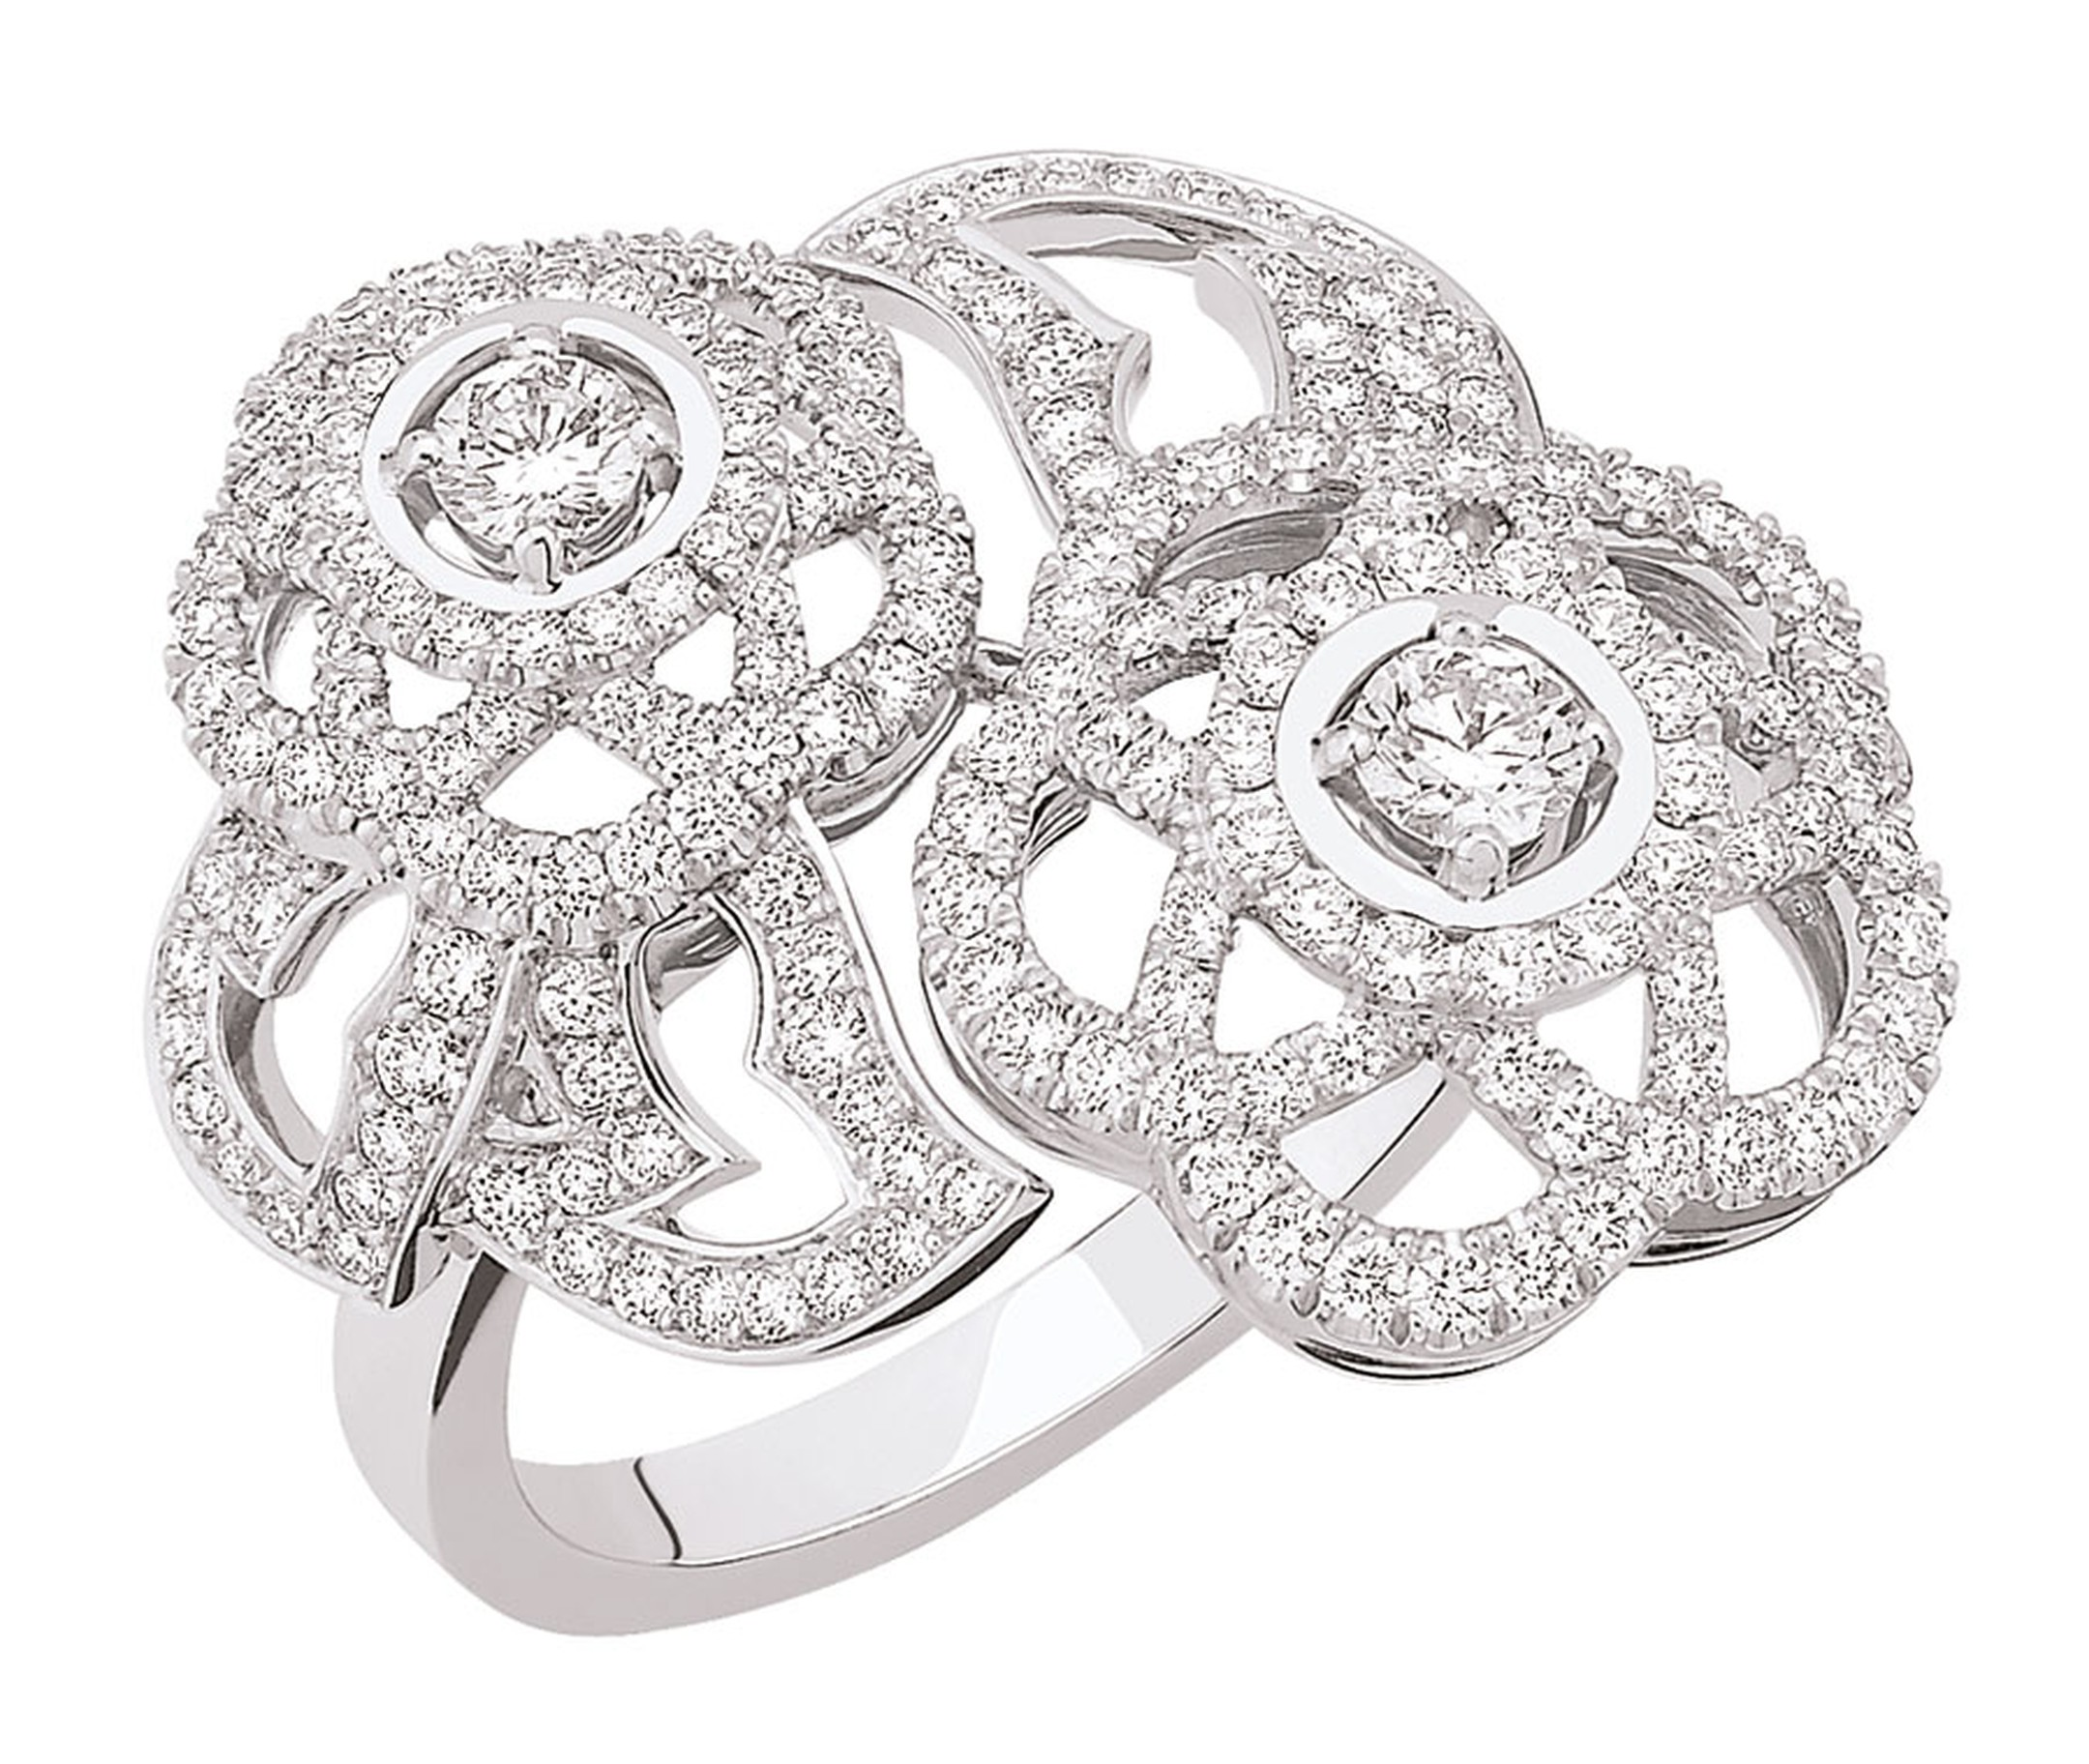 Chanel Came´lia Brode´ Toi & Moi medium version ring in white gold set with diamonds.